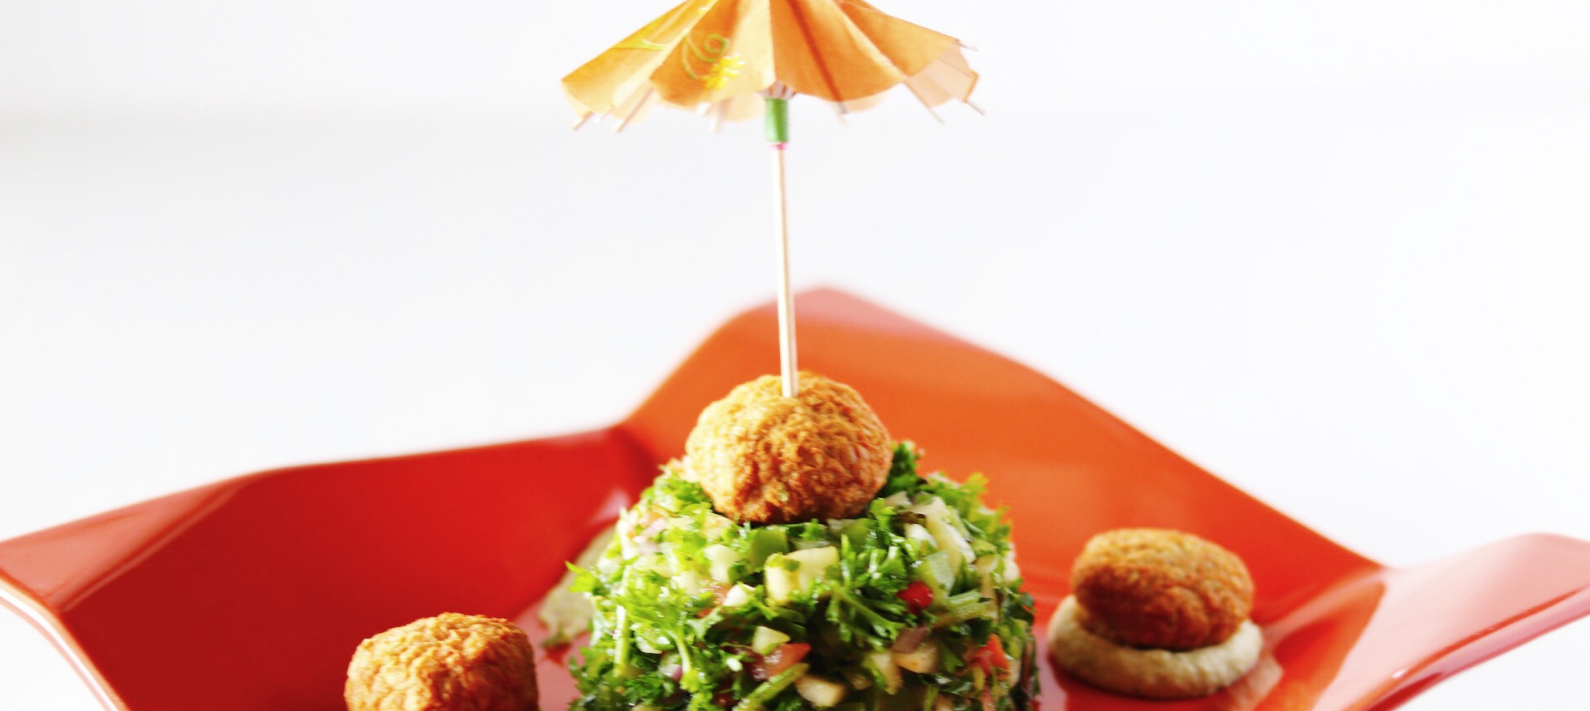 Jazz up your Tabouleh, a mediterranean salad, with Wundernuggets and Lantana Hummus